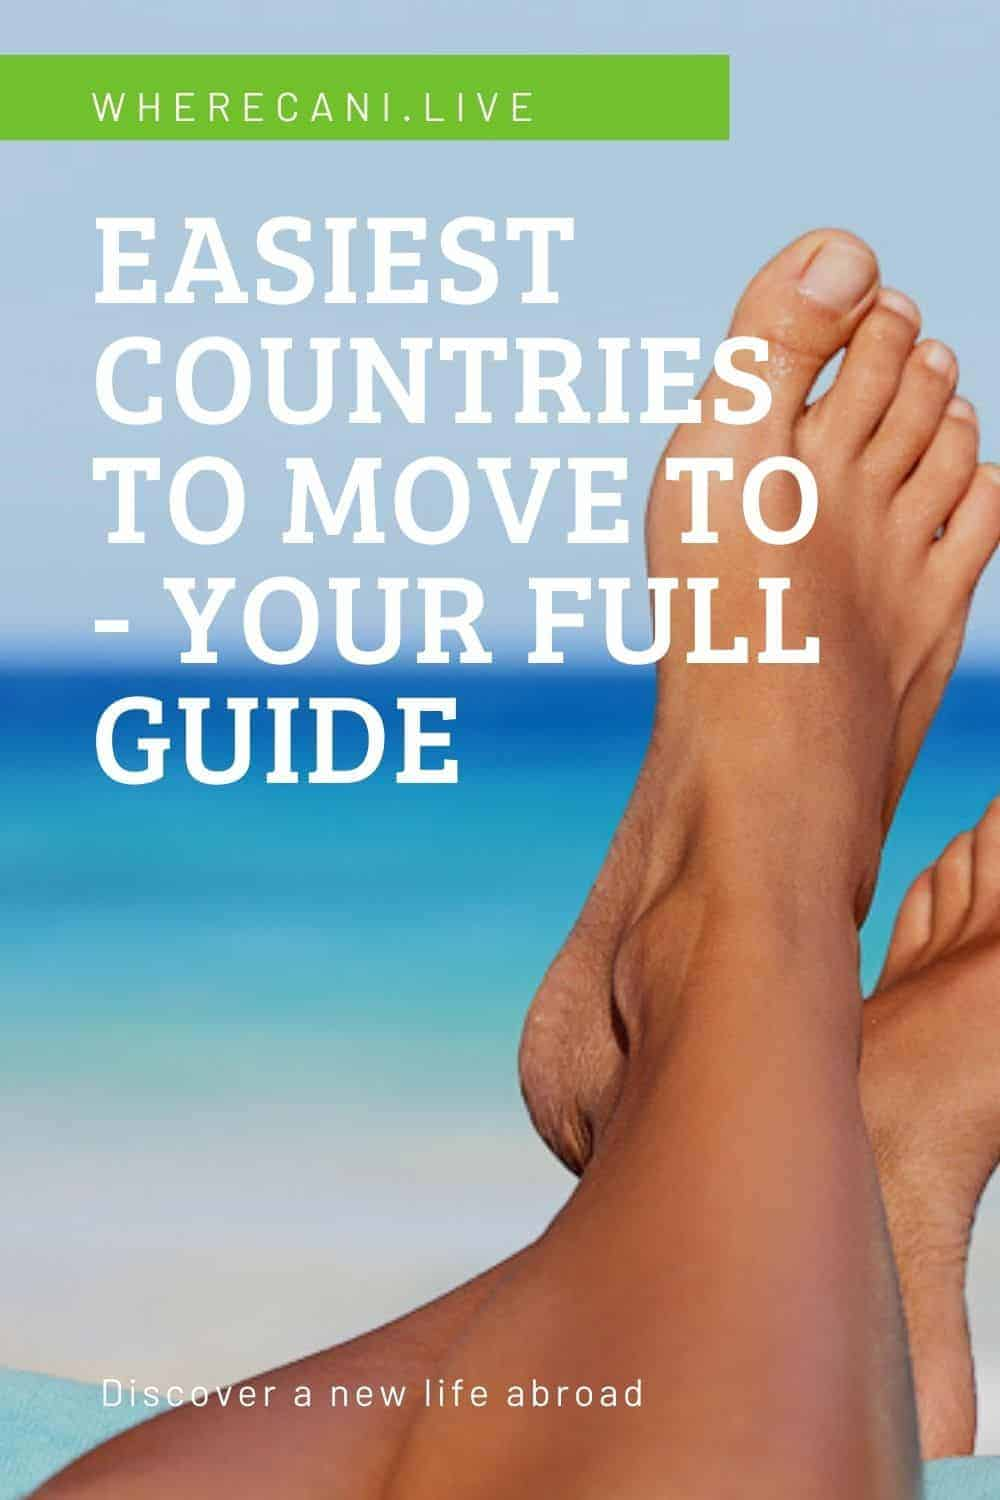 Here is a full guide on the easiest countries to move to.  #moveabroad #expat #expatlife #relocation #abroad via @wherecanilive